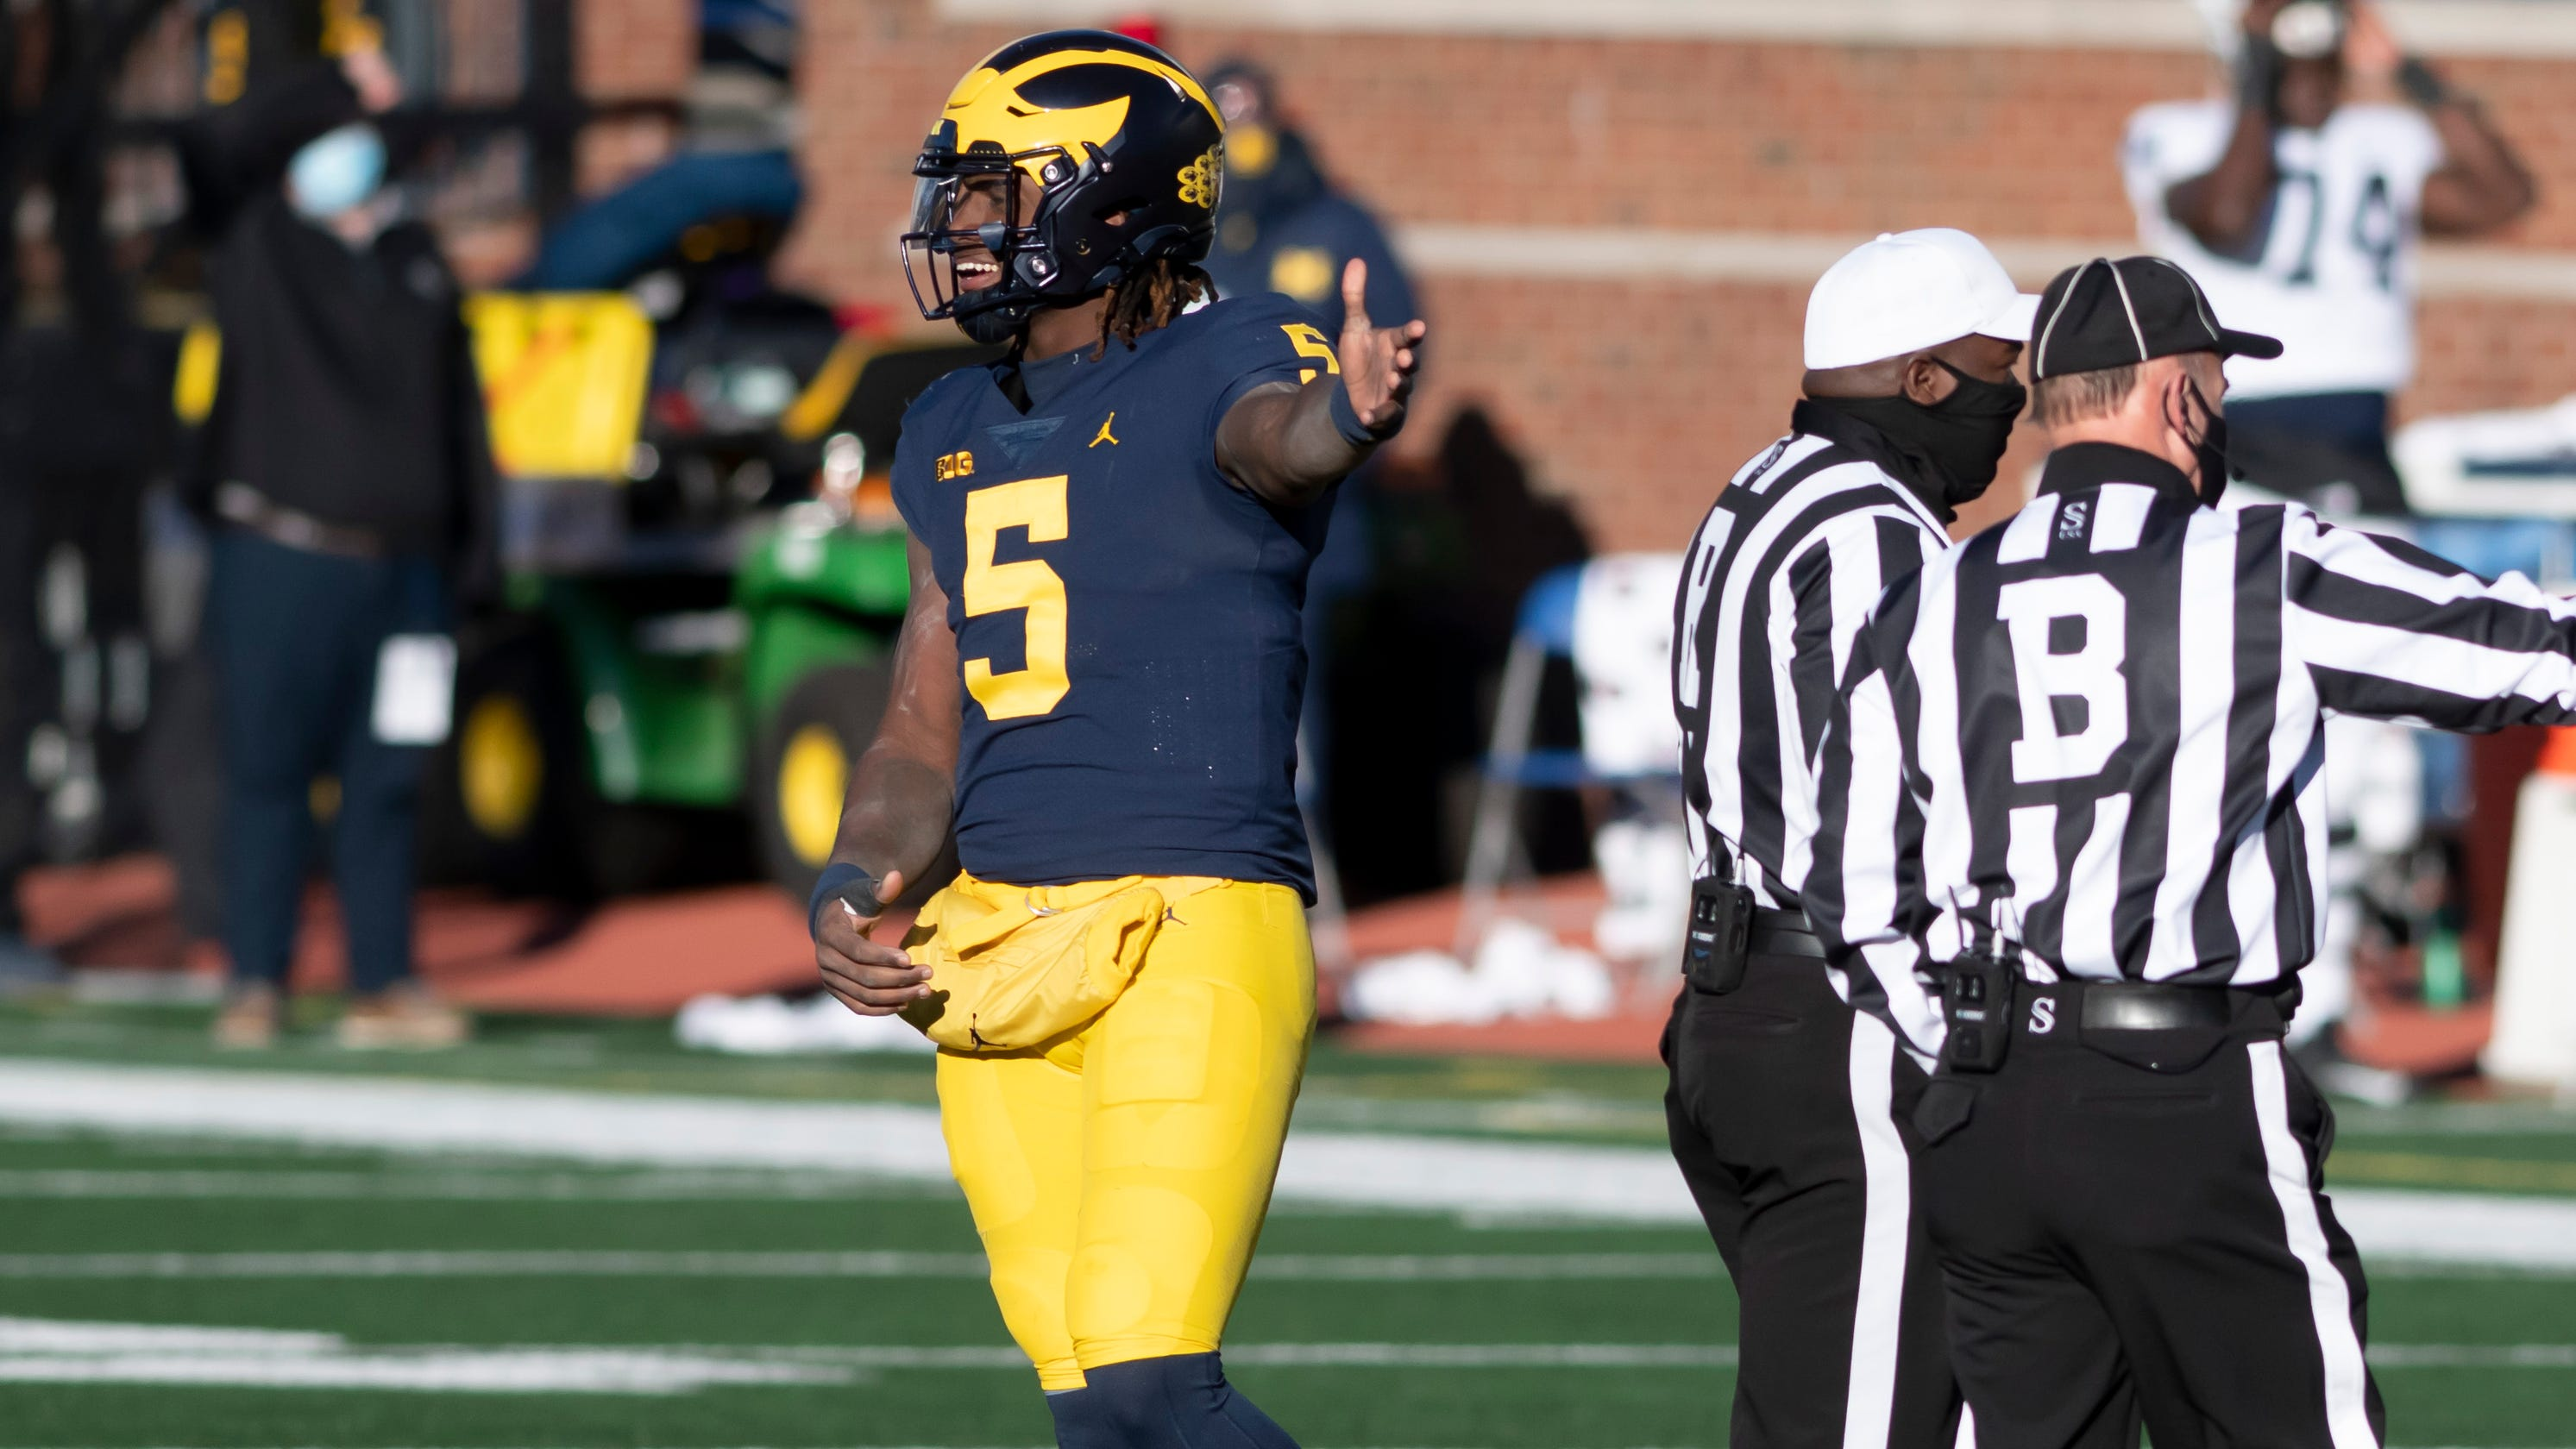 Michigan quarterback Joe Milton has offseason thumb surgery